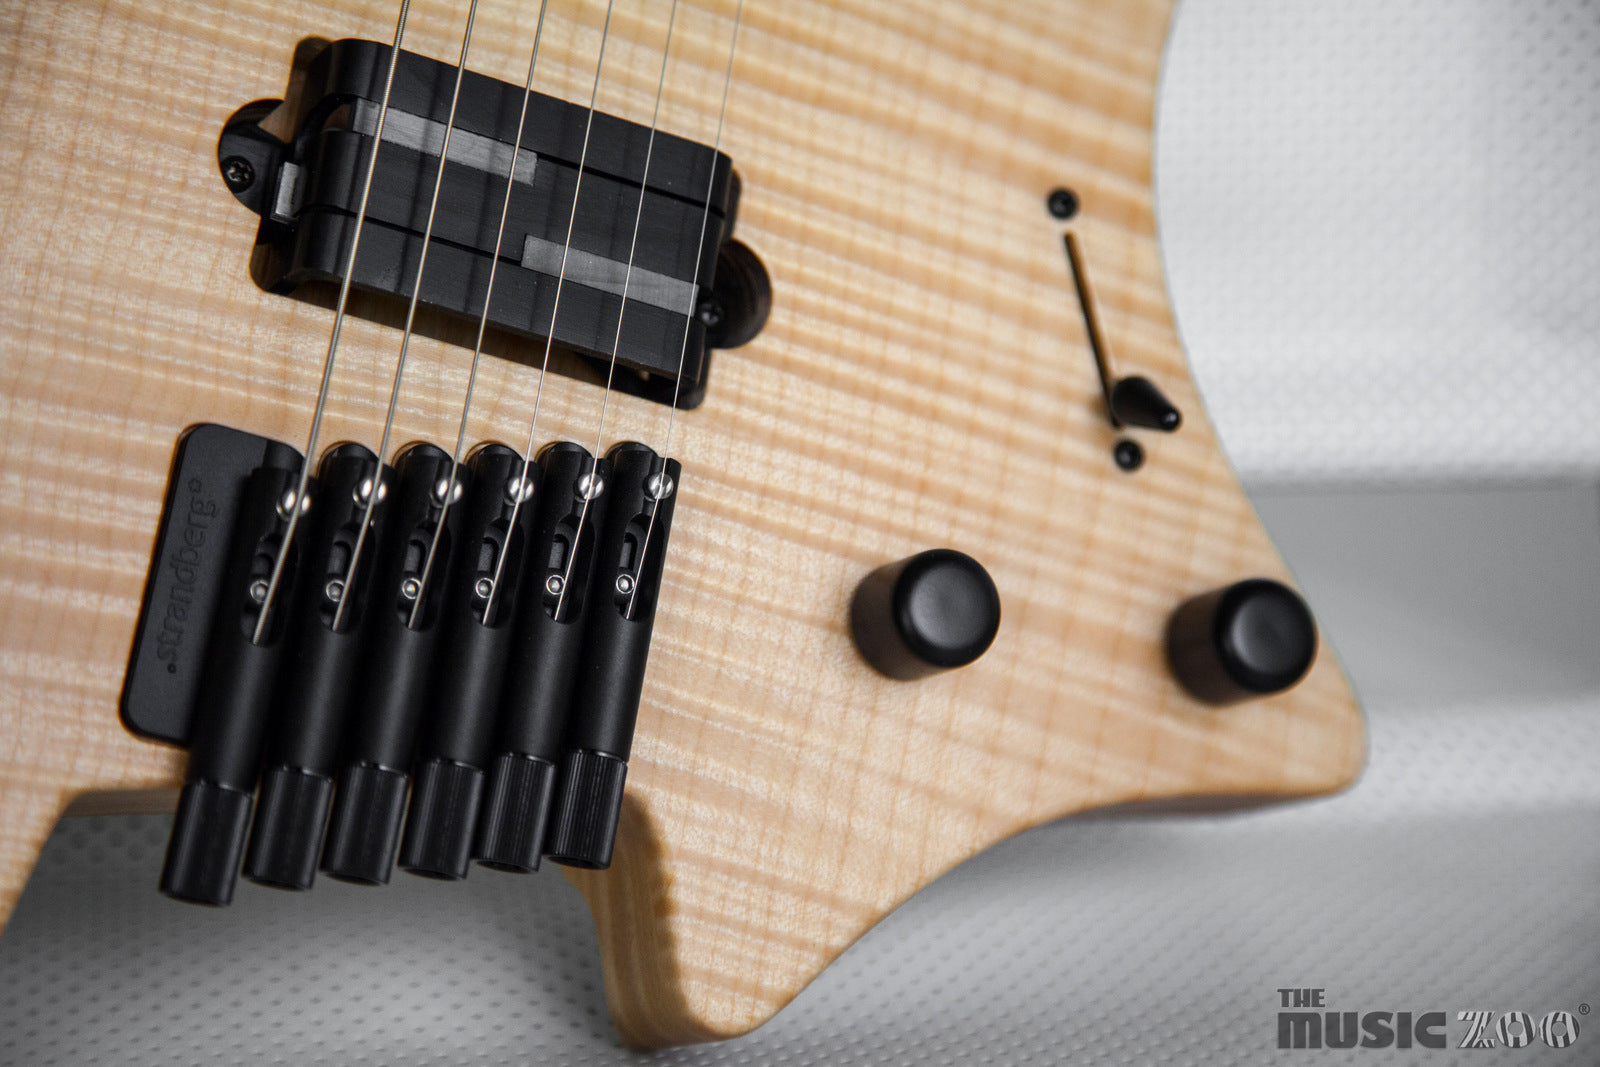 The Music Zoo Is An Authorized Strandberg Guitars Dealer Emg P Bass Pickups Wiring Reverb Blog 7 Of 10